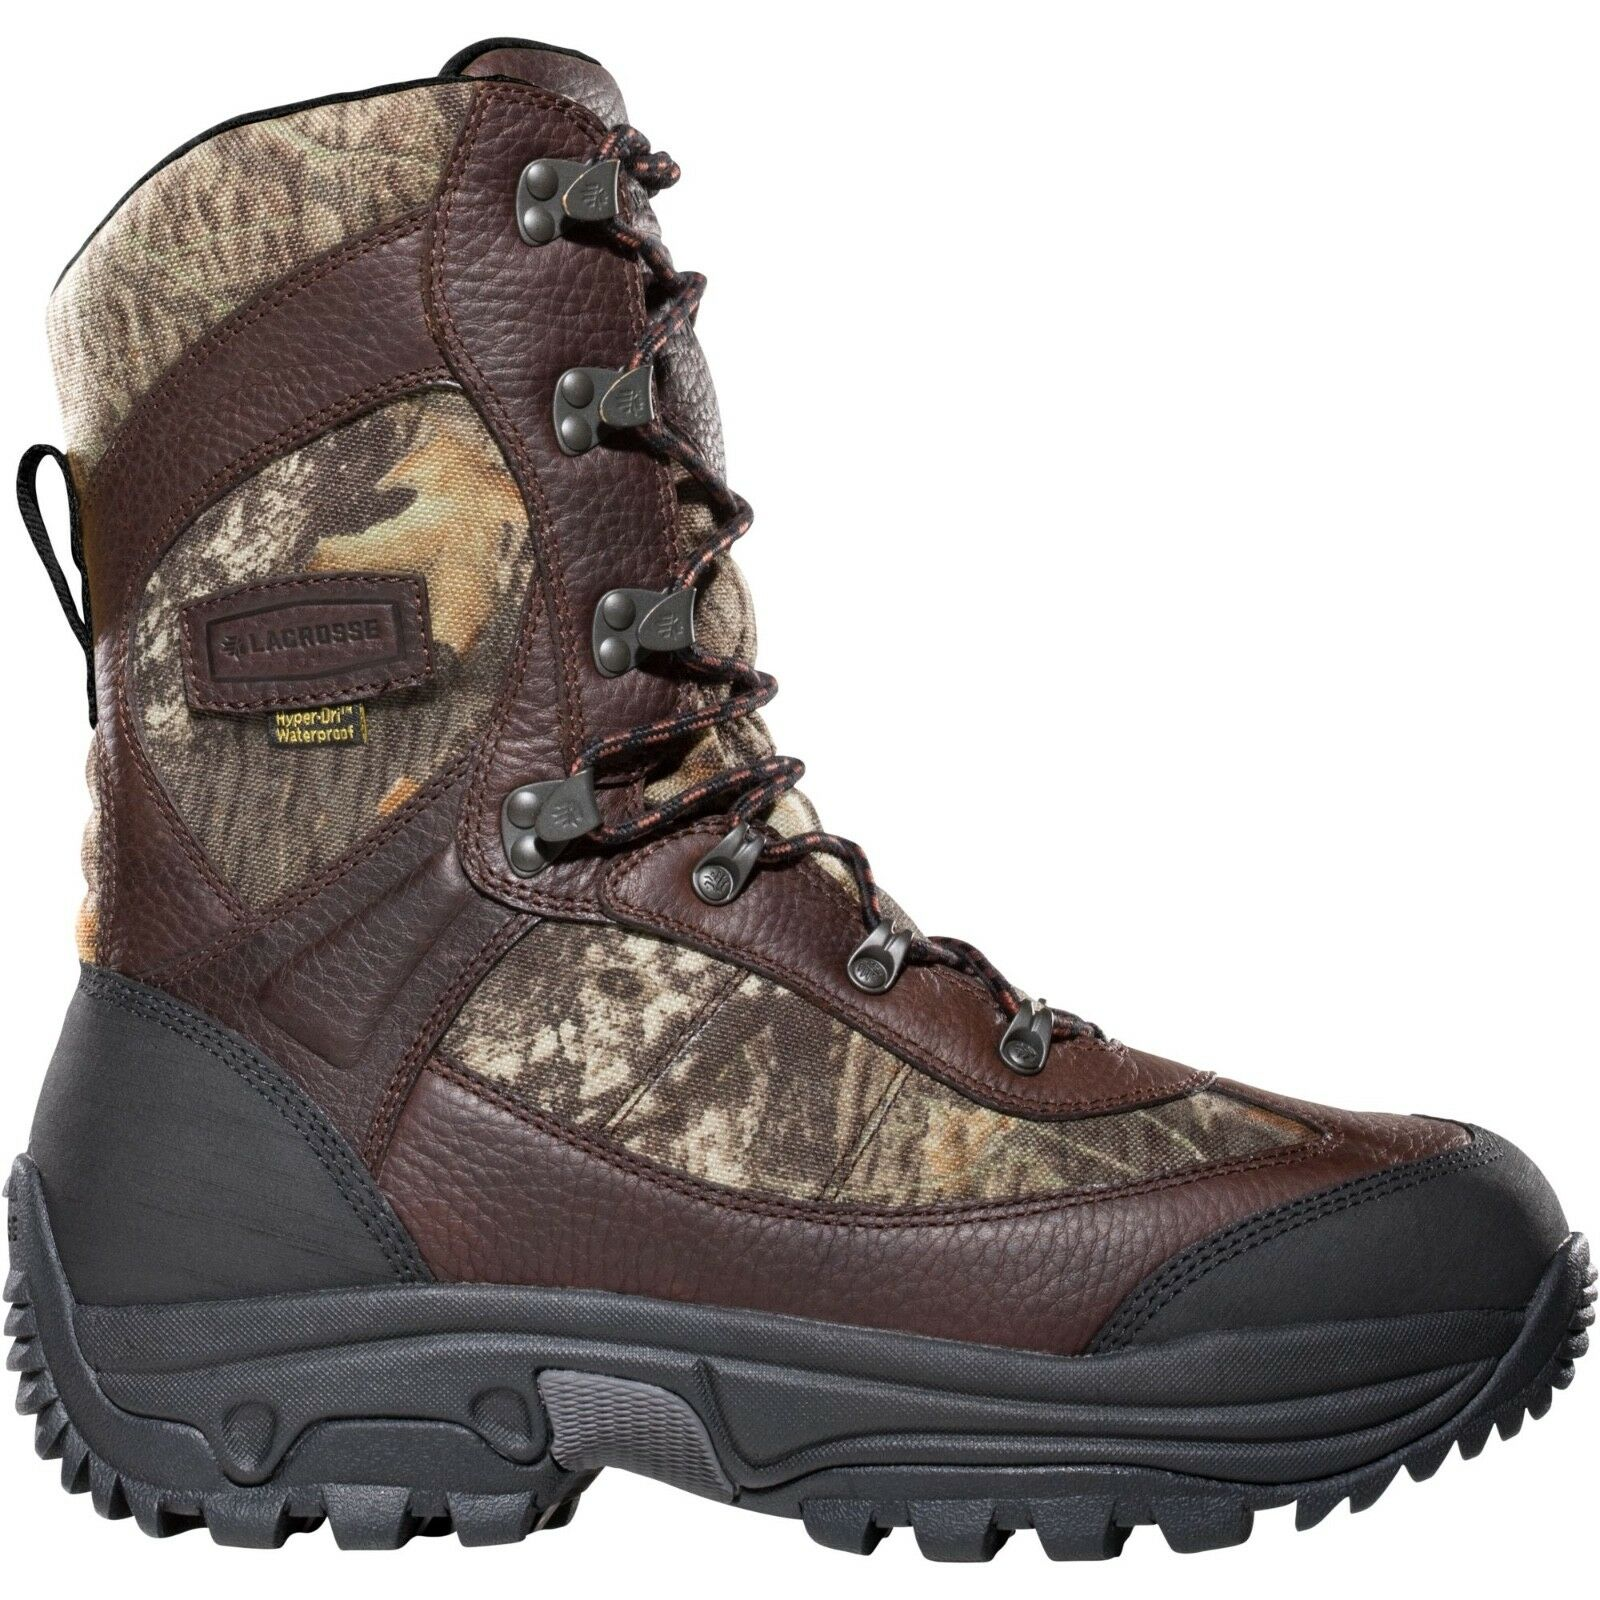 LaCrosse Hunt Pac Extreme 10  Mossy Oak  Break-Up Mens Hunting Boot Size 12  wholesape cheap